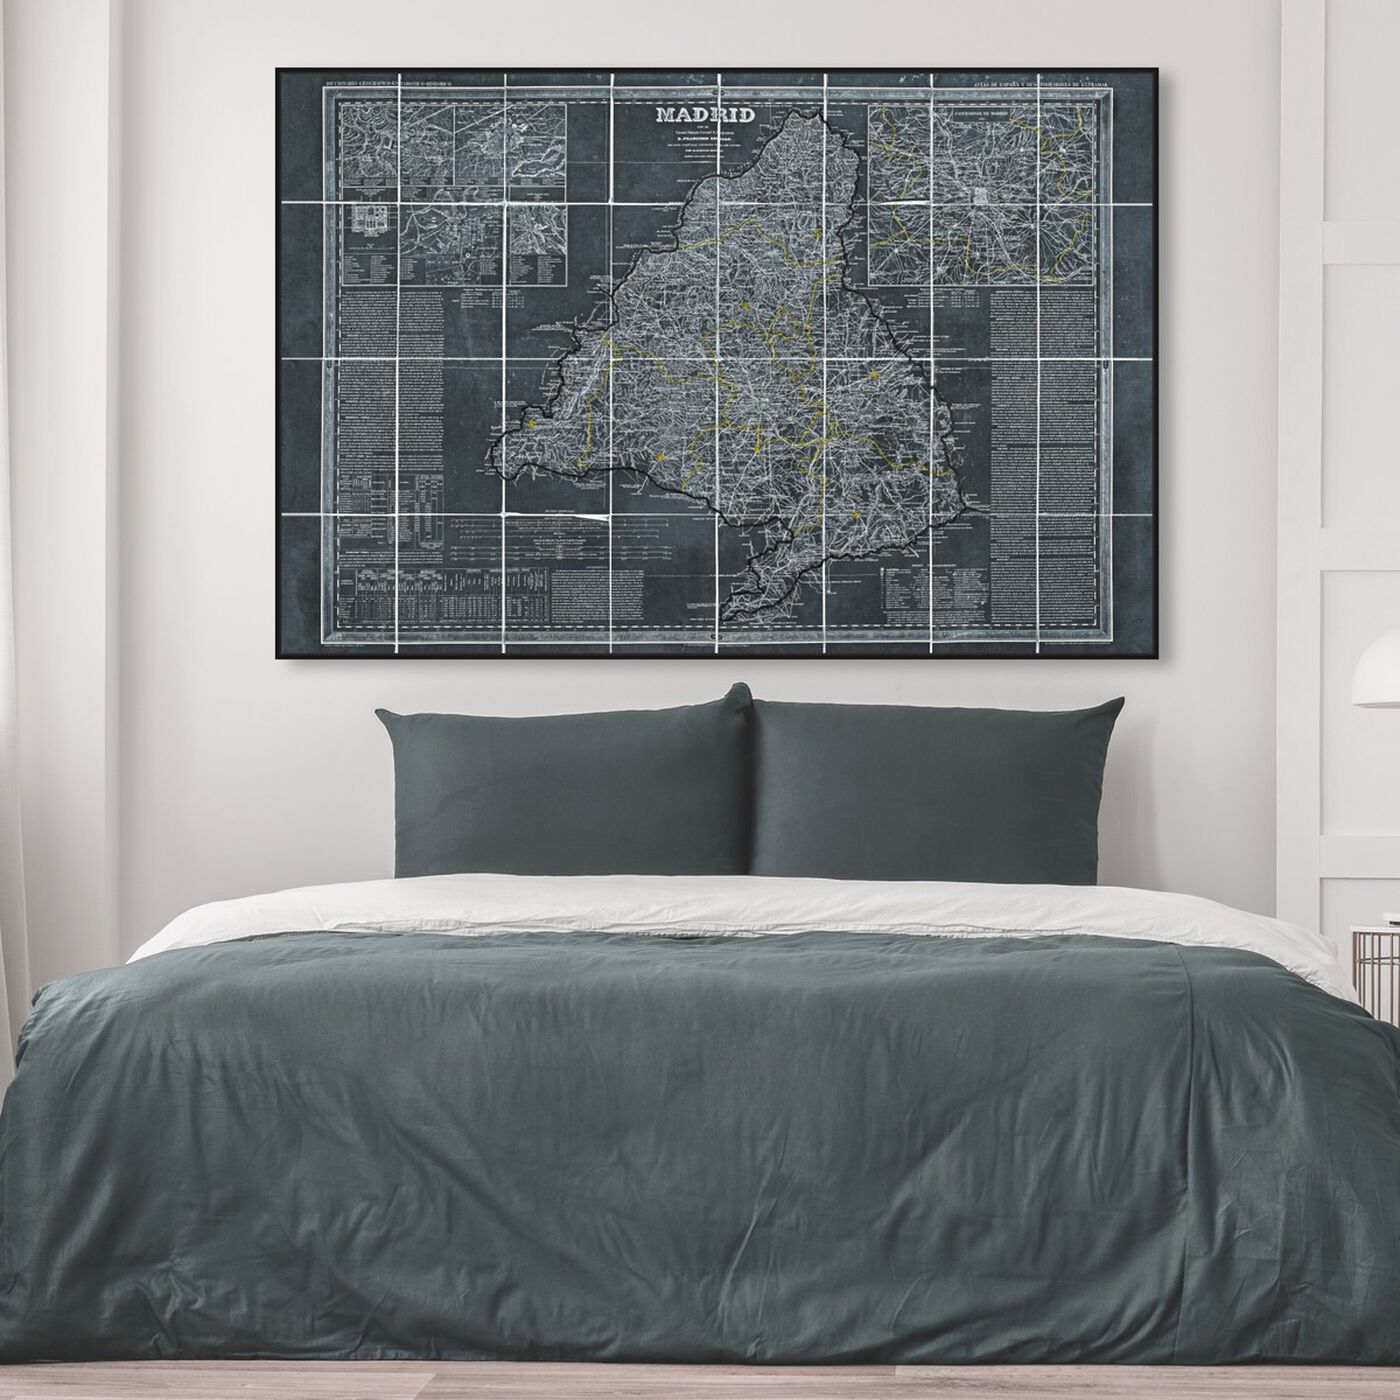 Hanging view of Map of Madrid 1861 featuring maps and flags and european cities maps art.